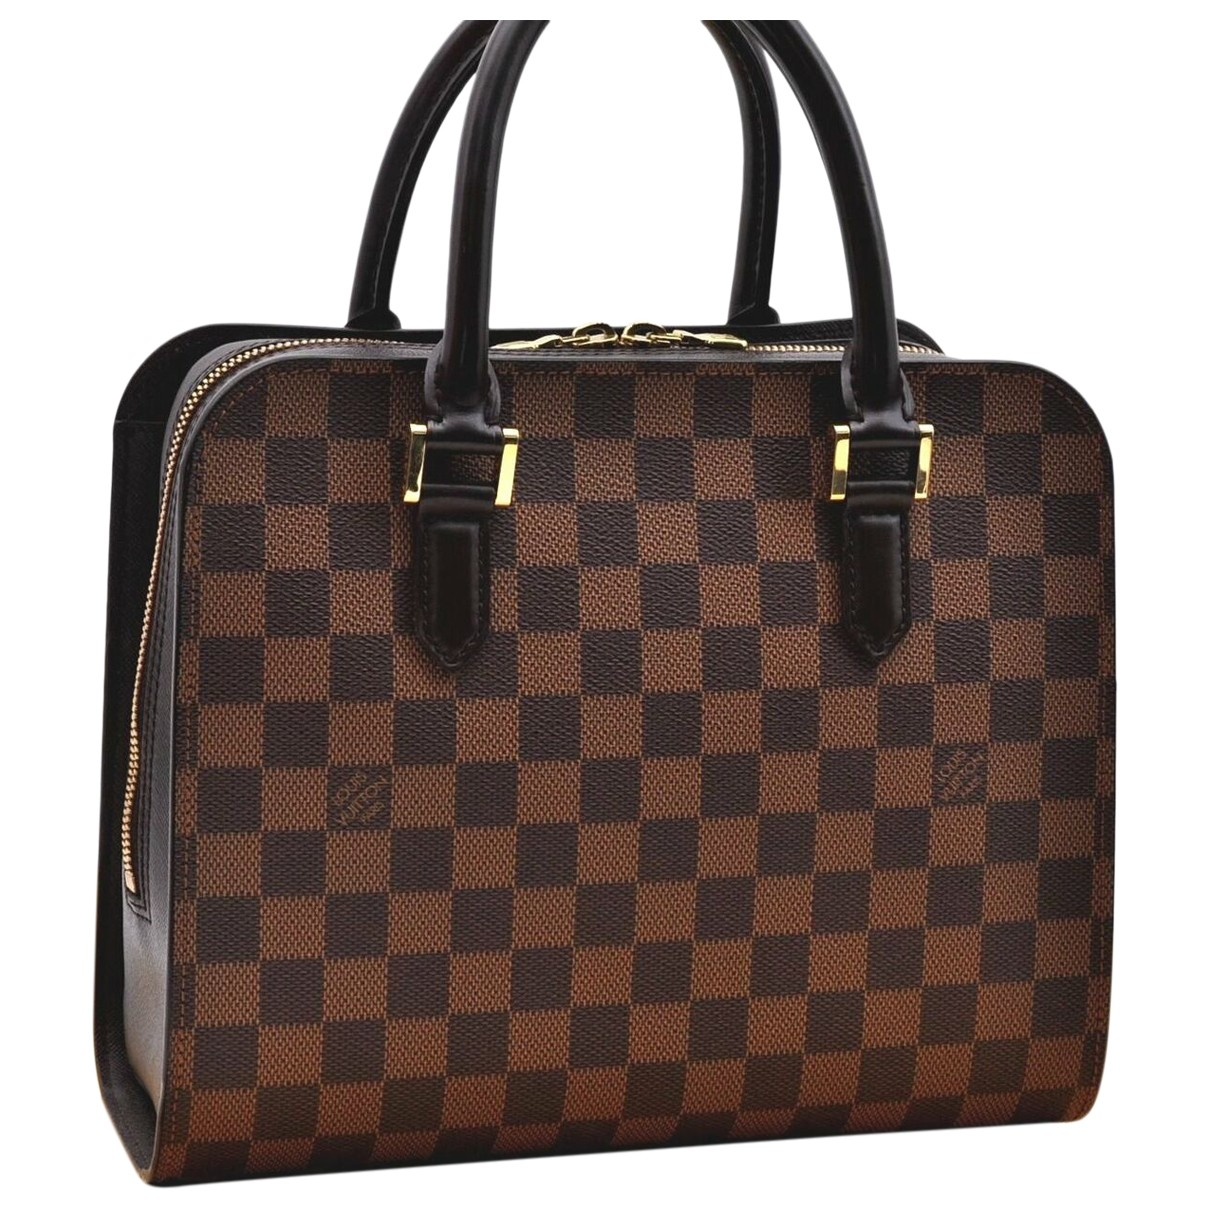 Bolso de Lona Louis Vuitton